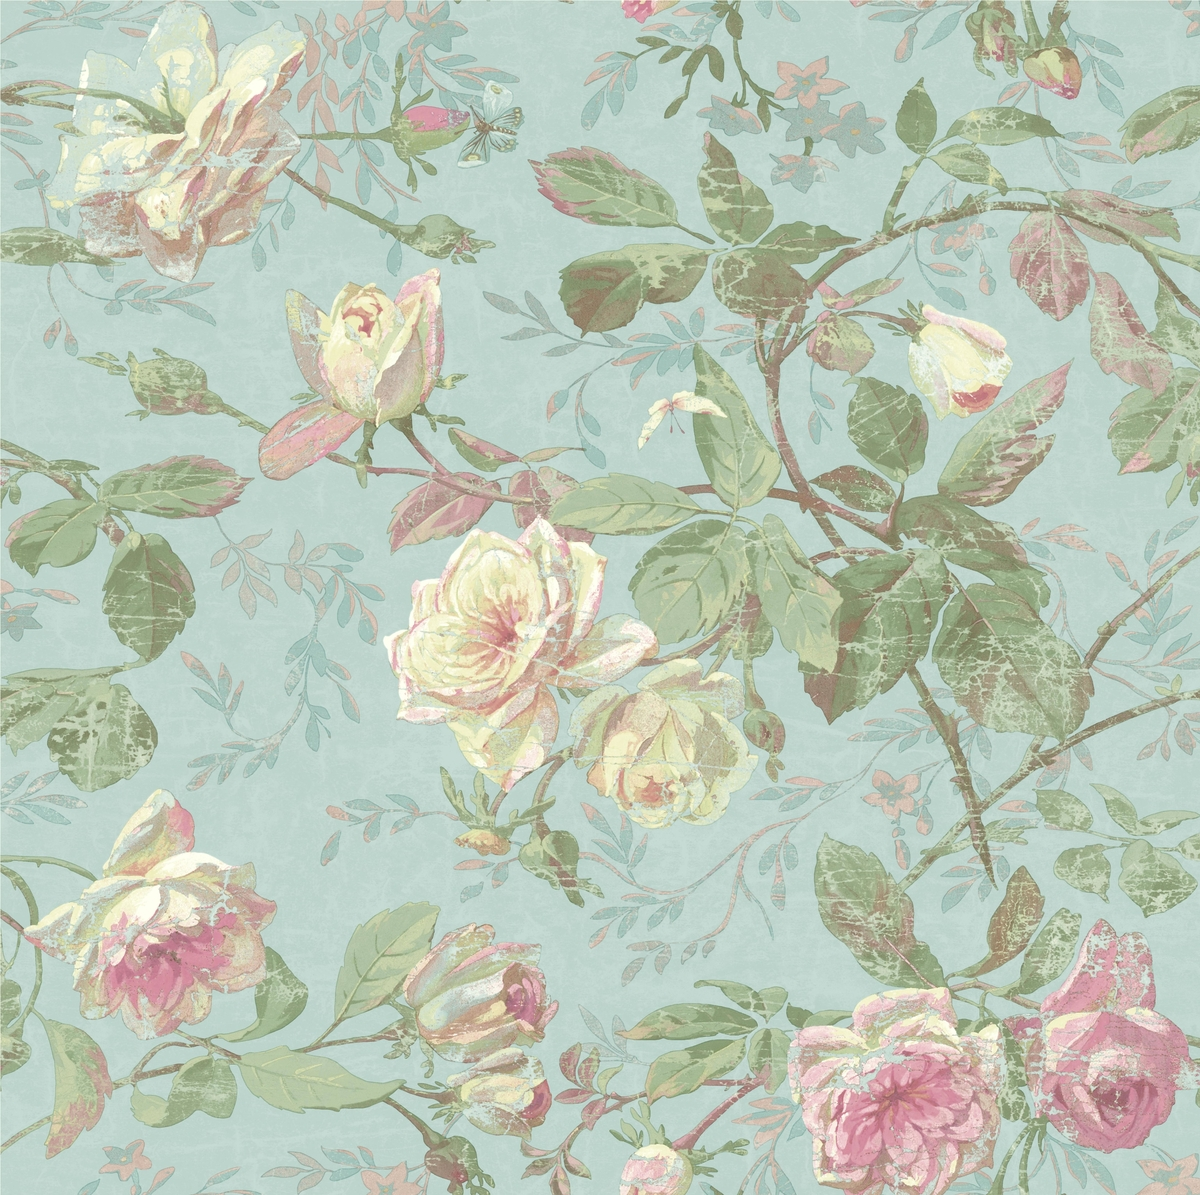 Vintage Floral Wallpaper Wallpaper And Borders The Mural Store